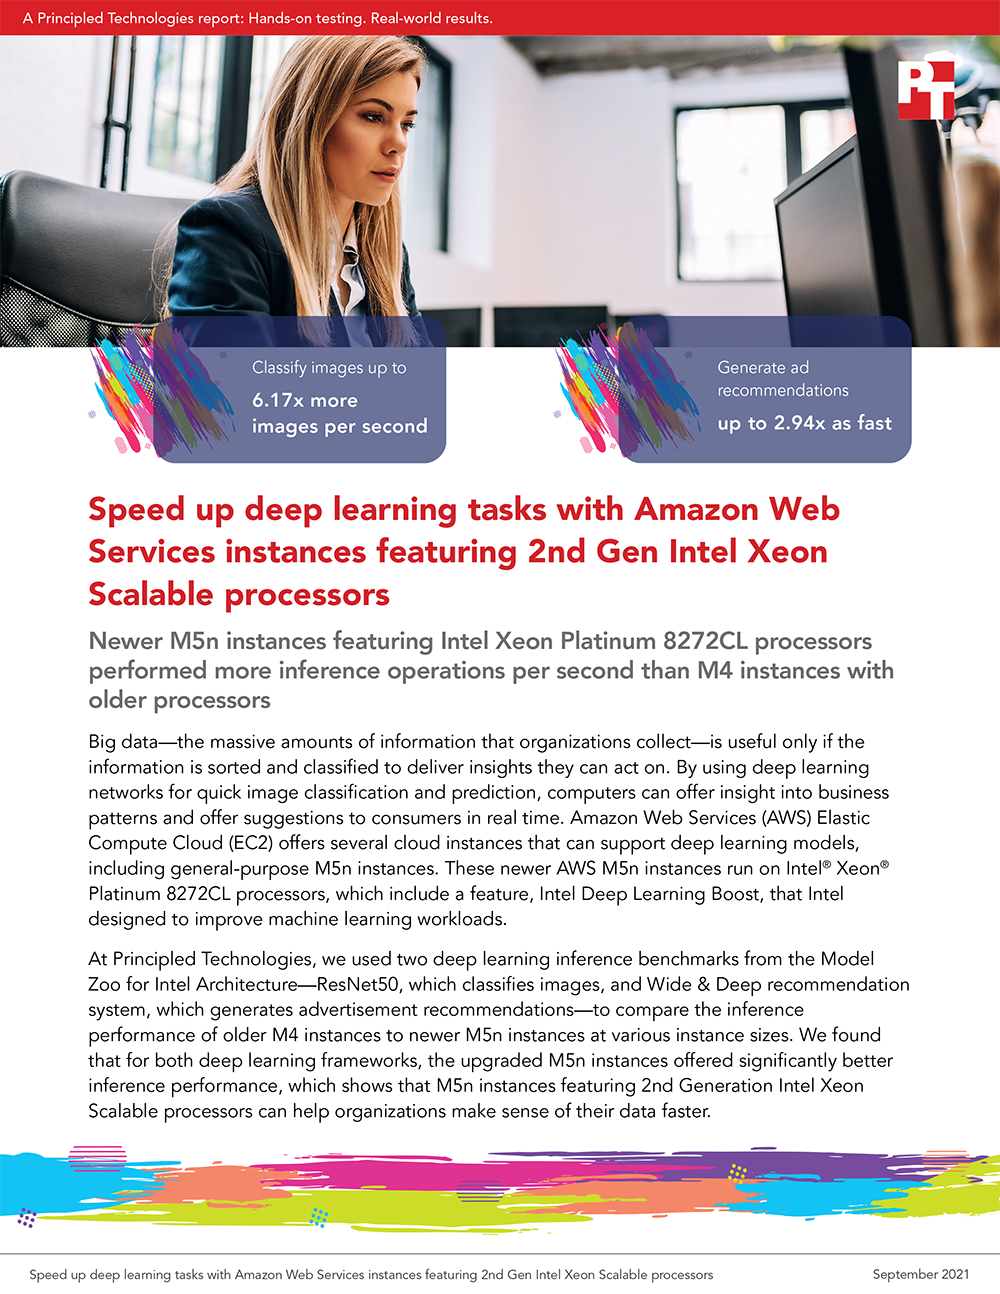 Principled Technologies Releases Study on Amazon Web Services M5n Instances Powered by 2nd Gen Intel Xeon Scalable Processors